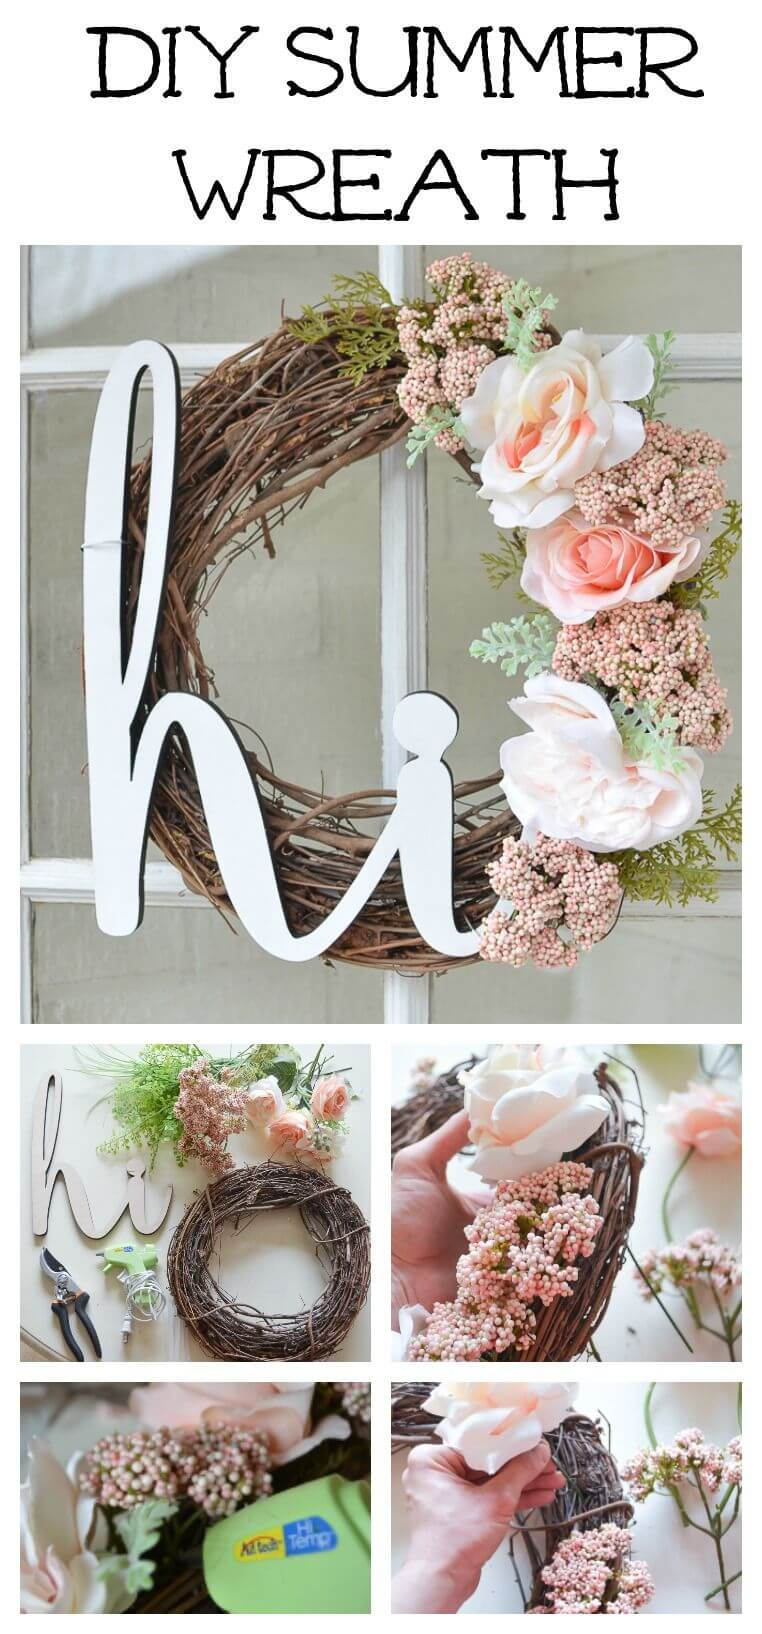 Rose Wreath with a Cheery Message